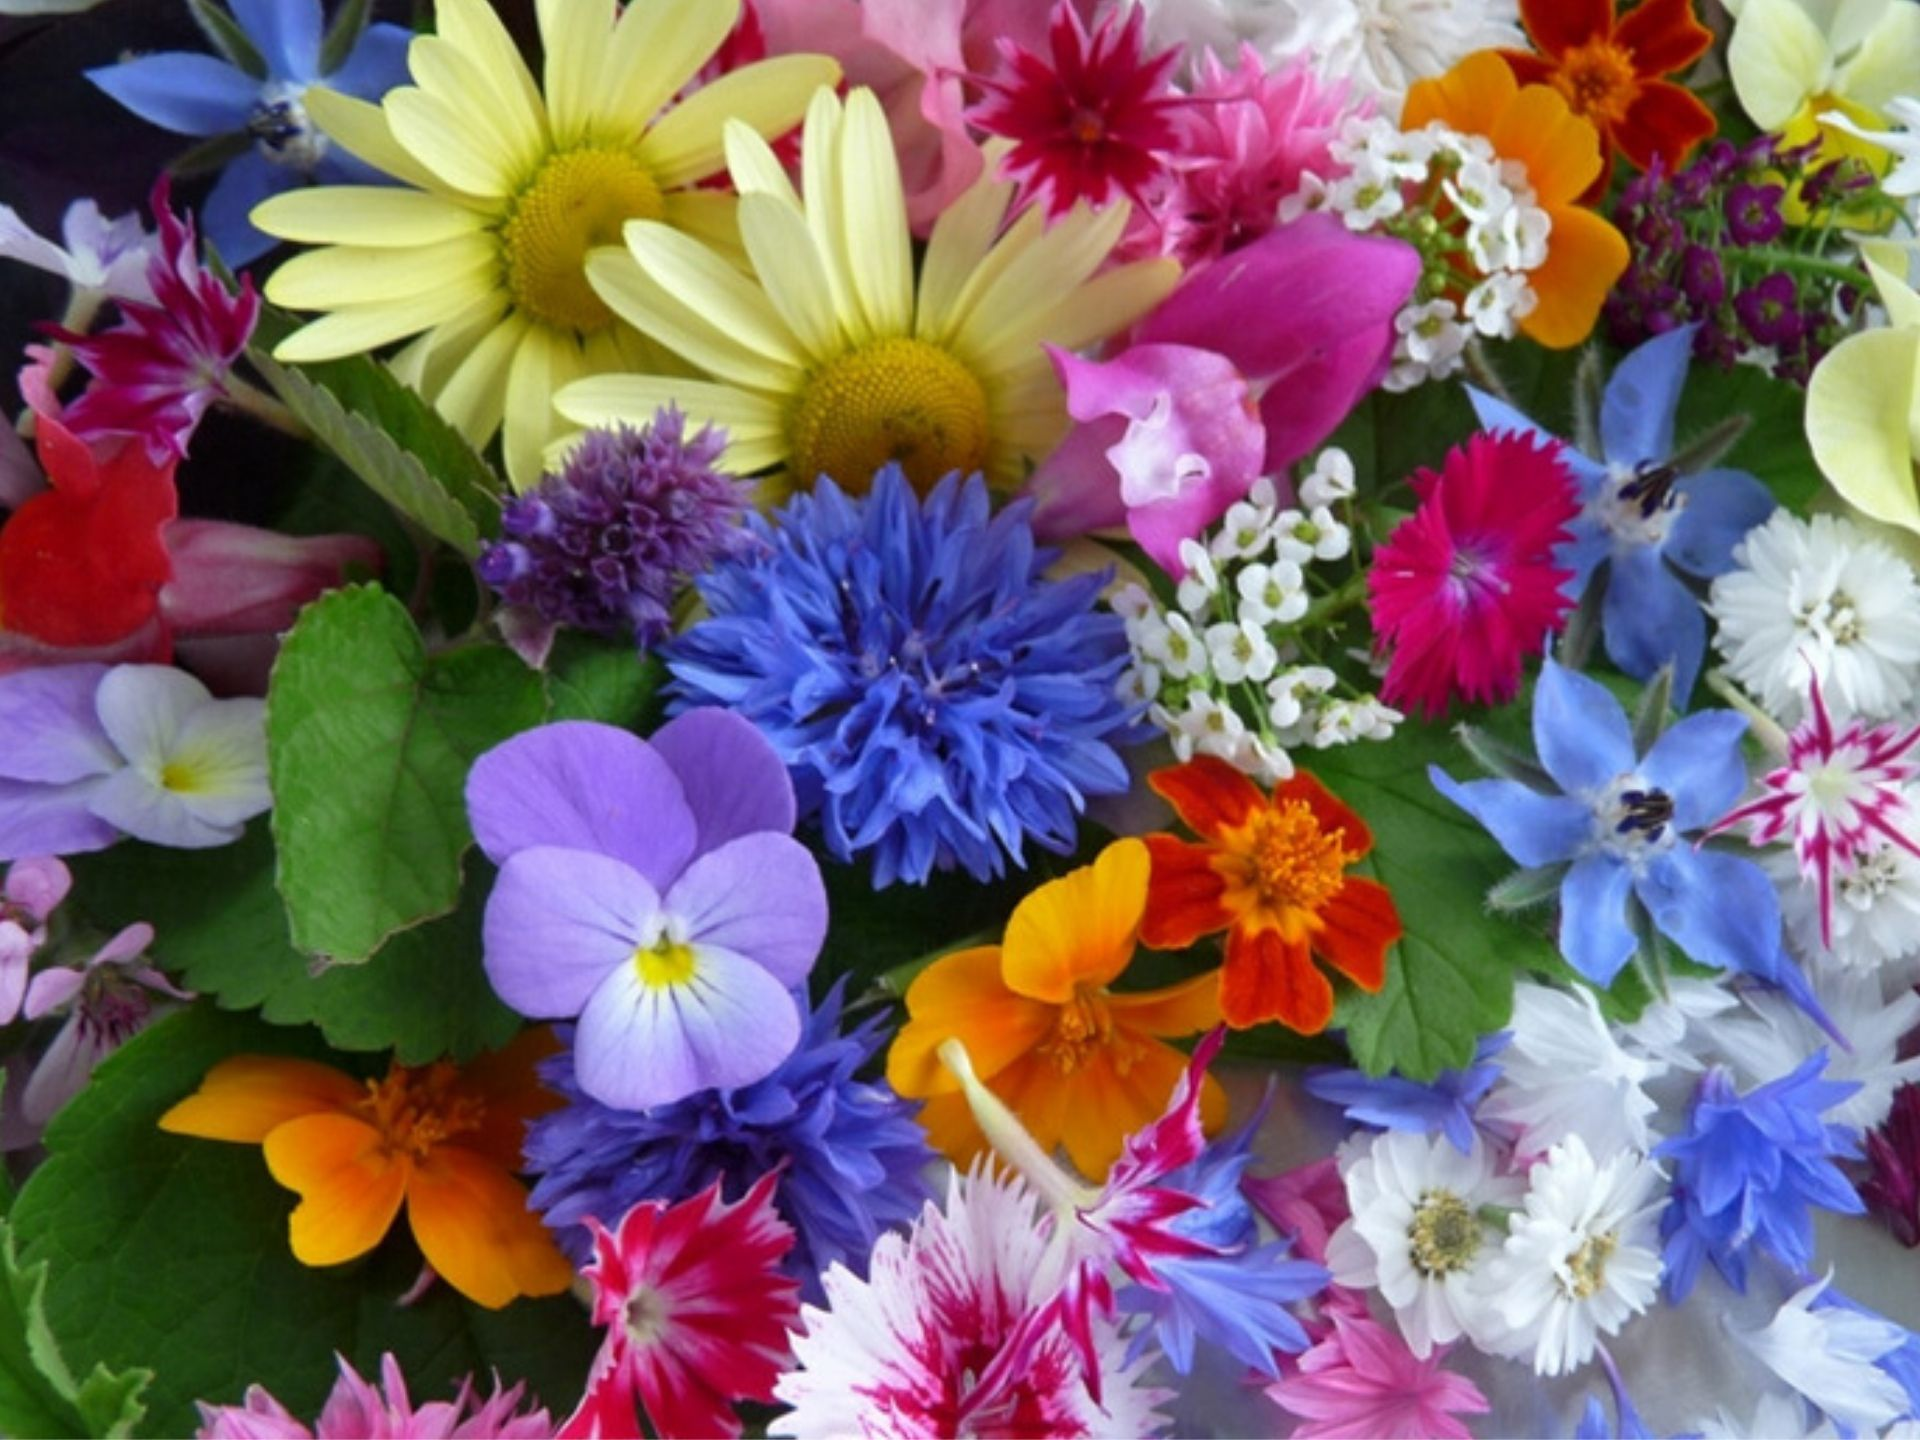 If you're looking for an edible flowers list, we've got one for you. If edible flowers sounds weird to you, you're not alone.